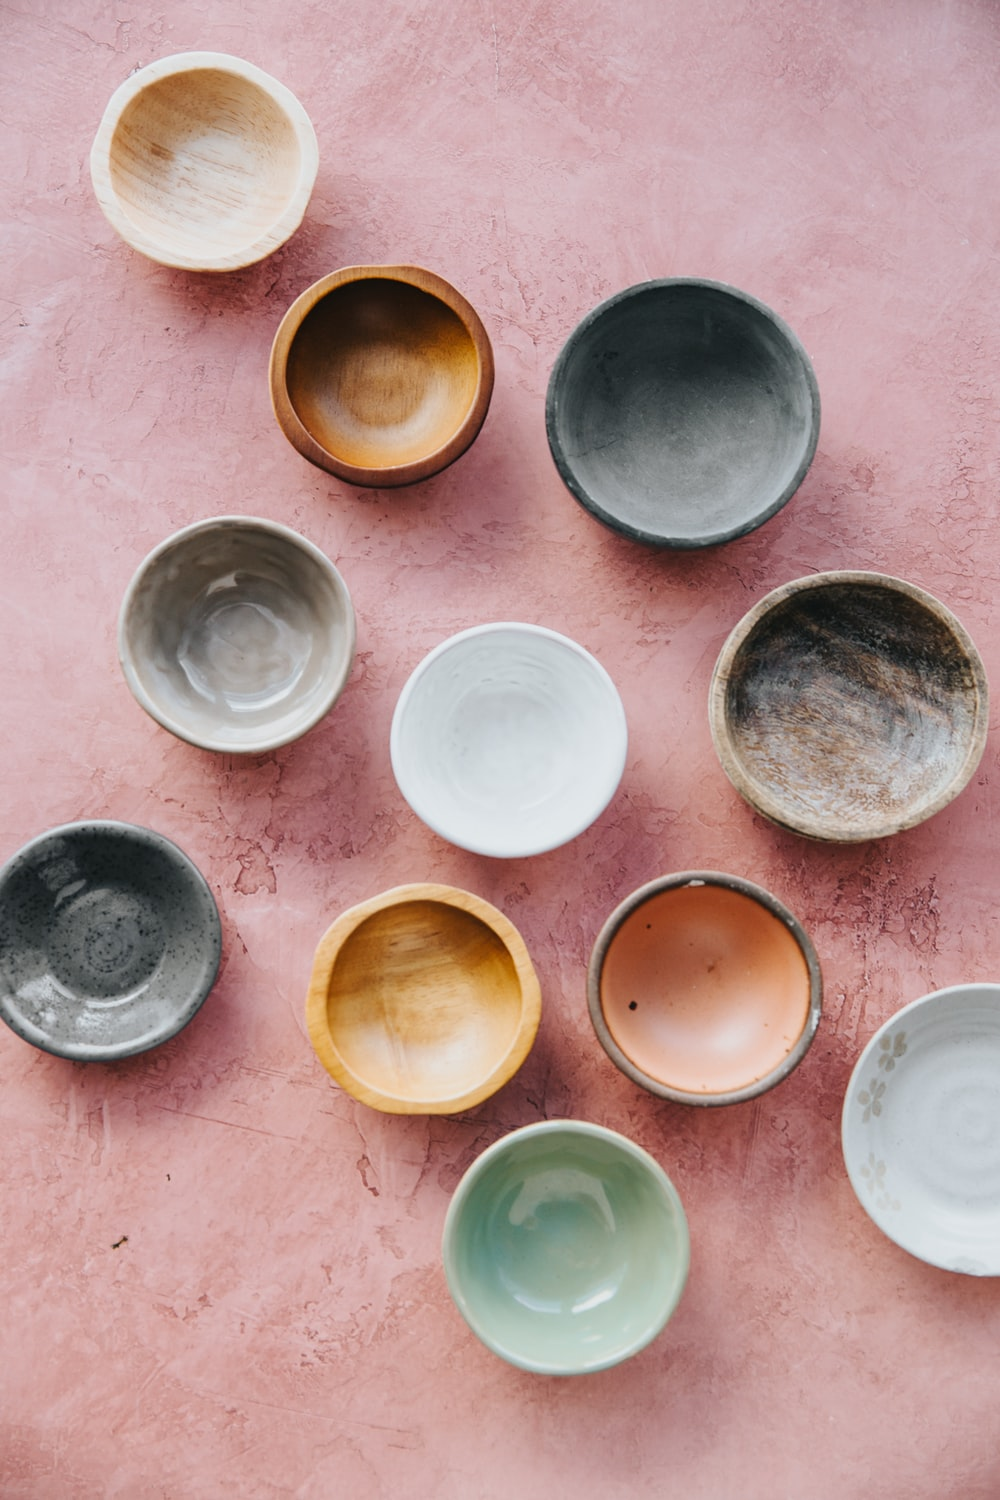 assorted bowls on brown surface